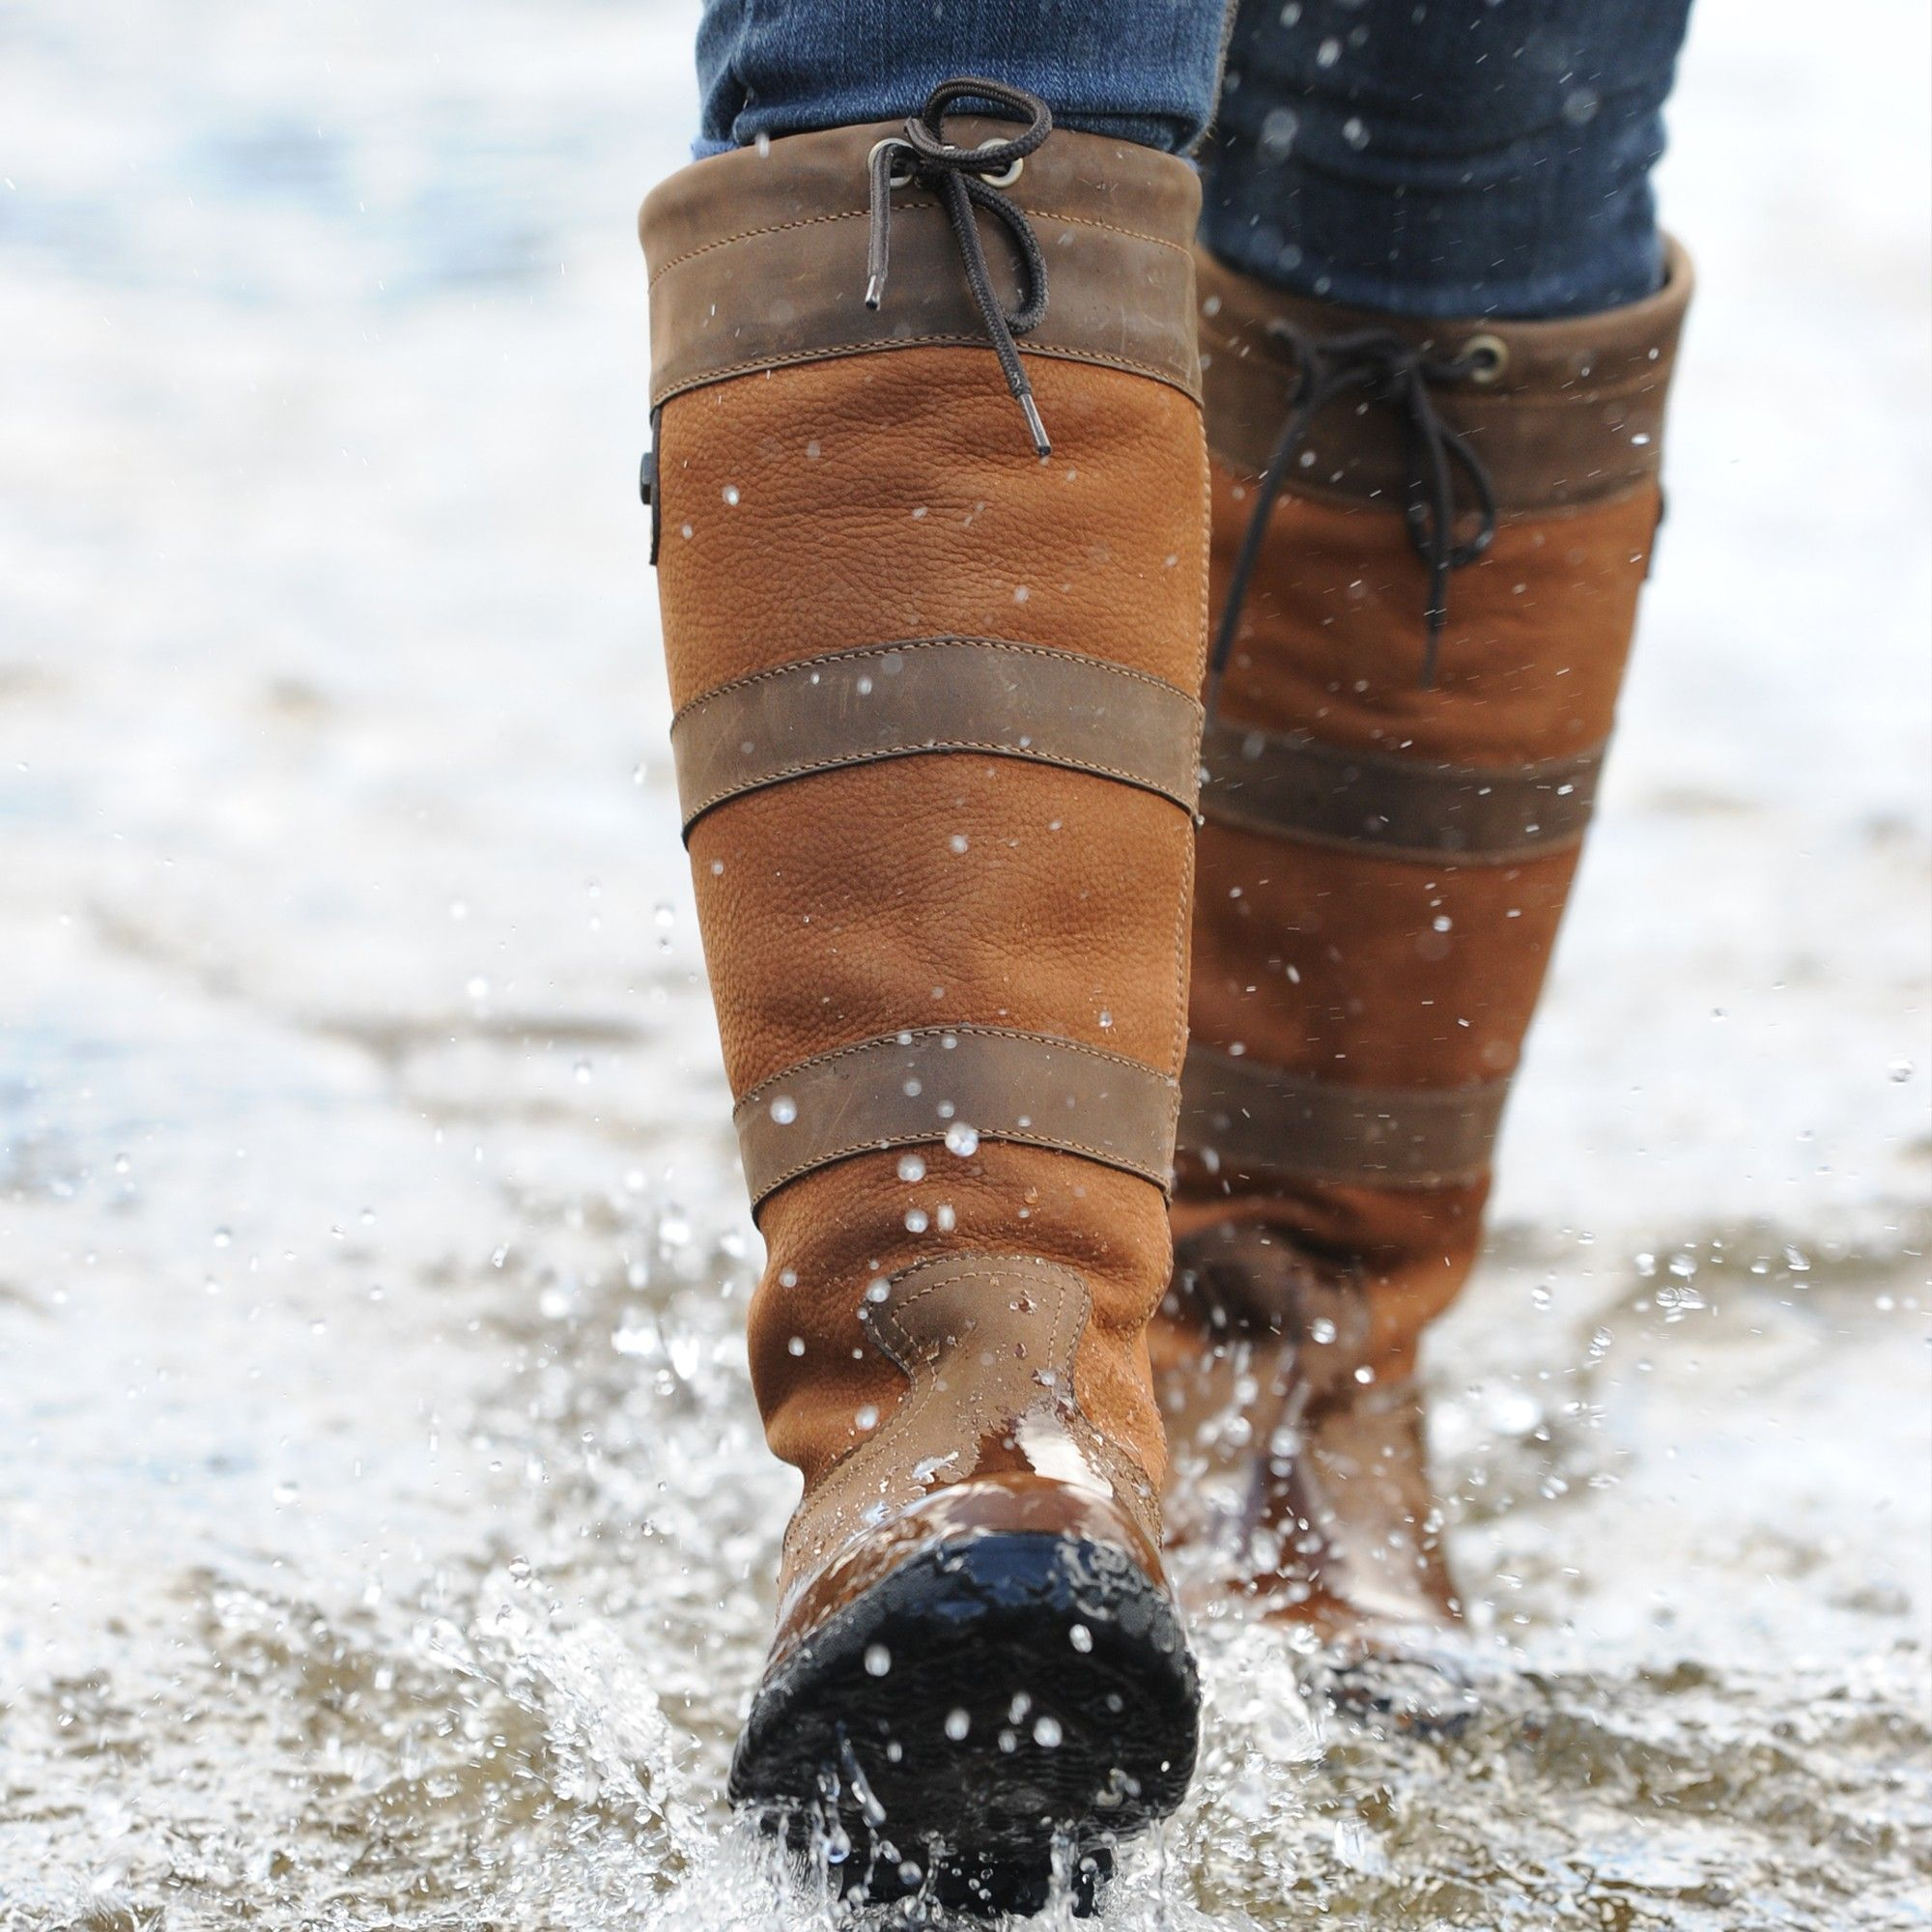 winter walking for warm review blundstone boot and boots waterproof comfortable comforter